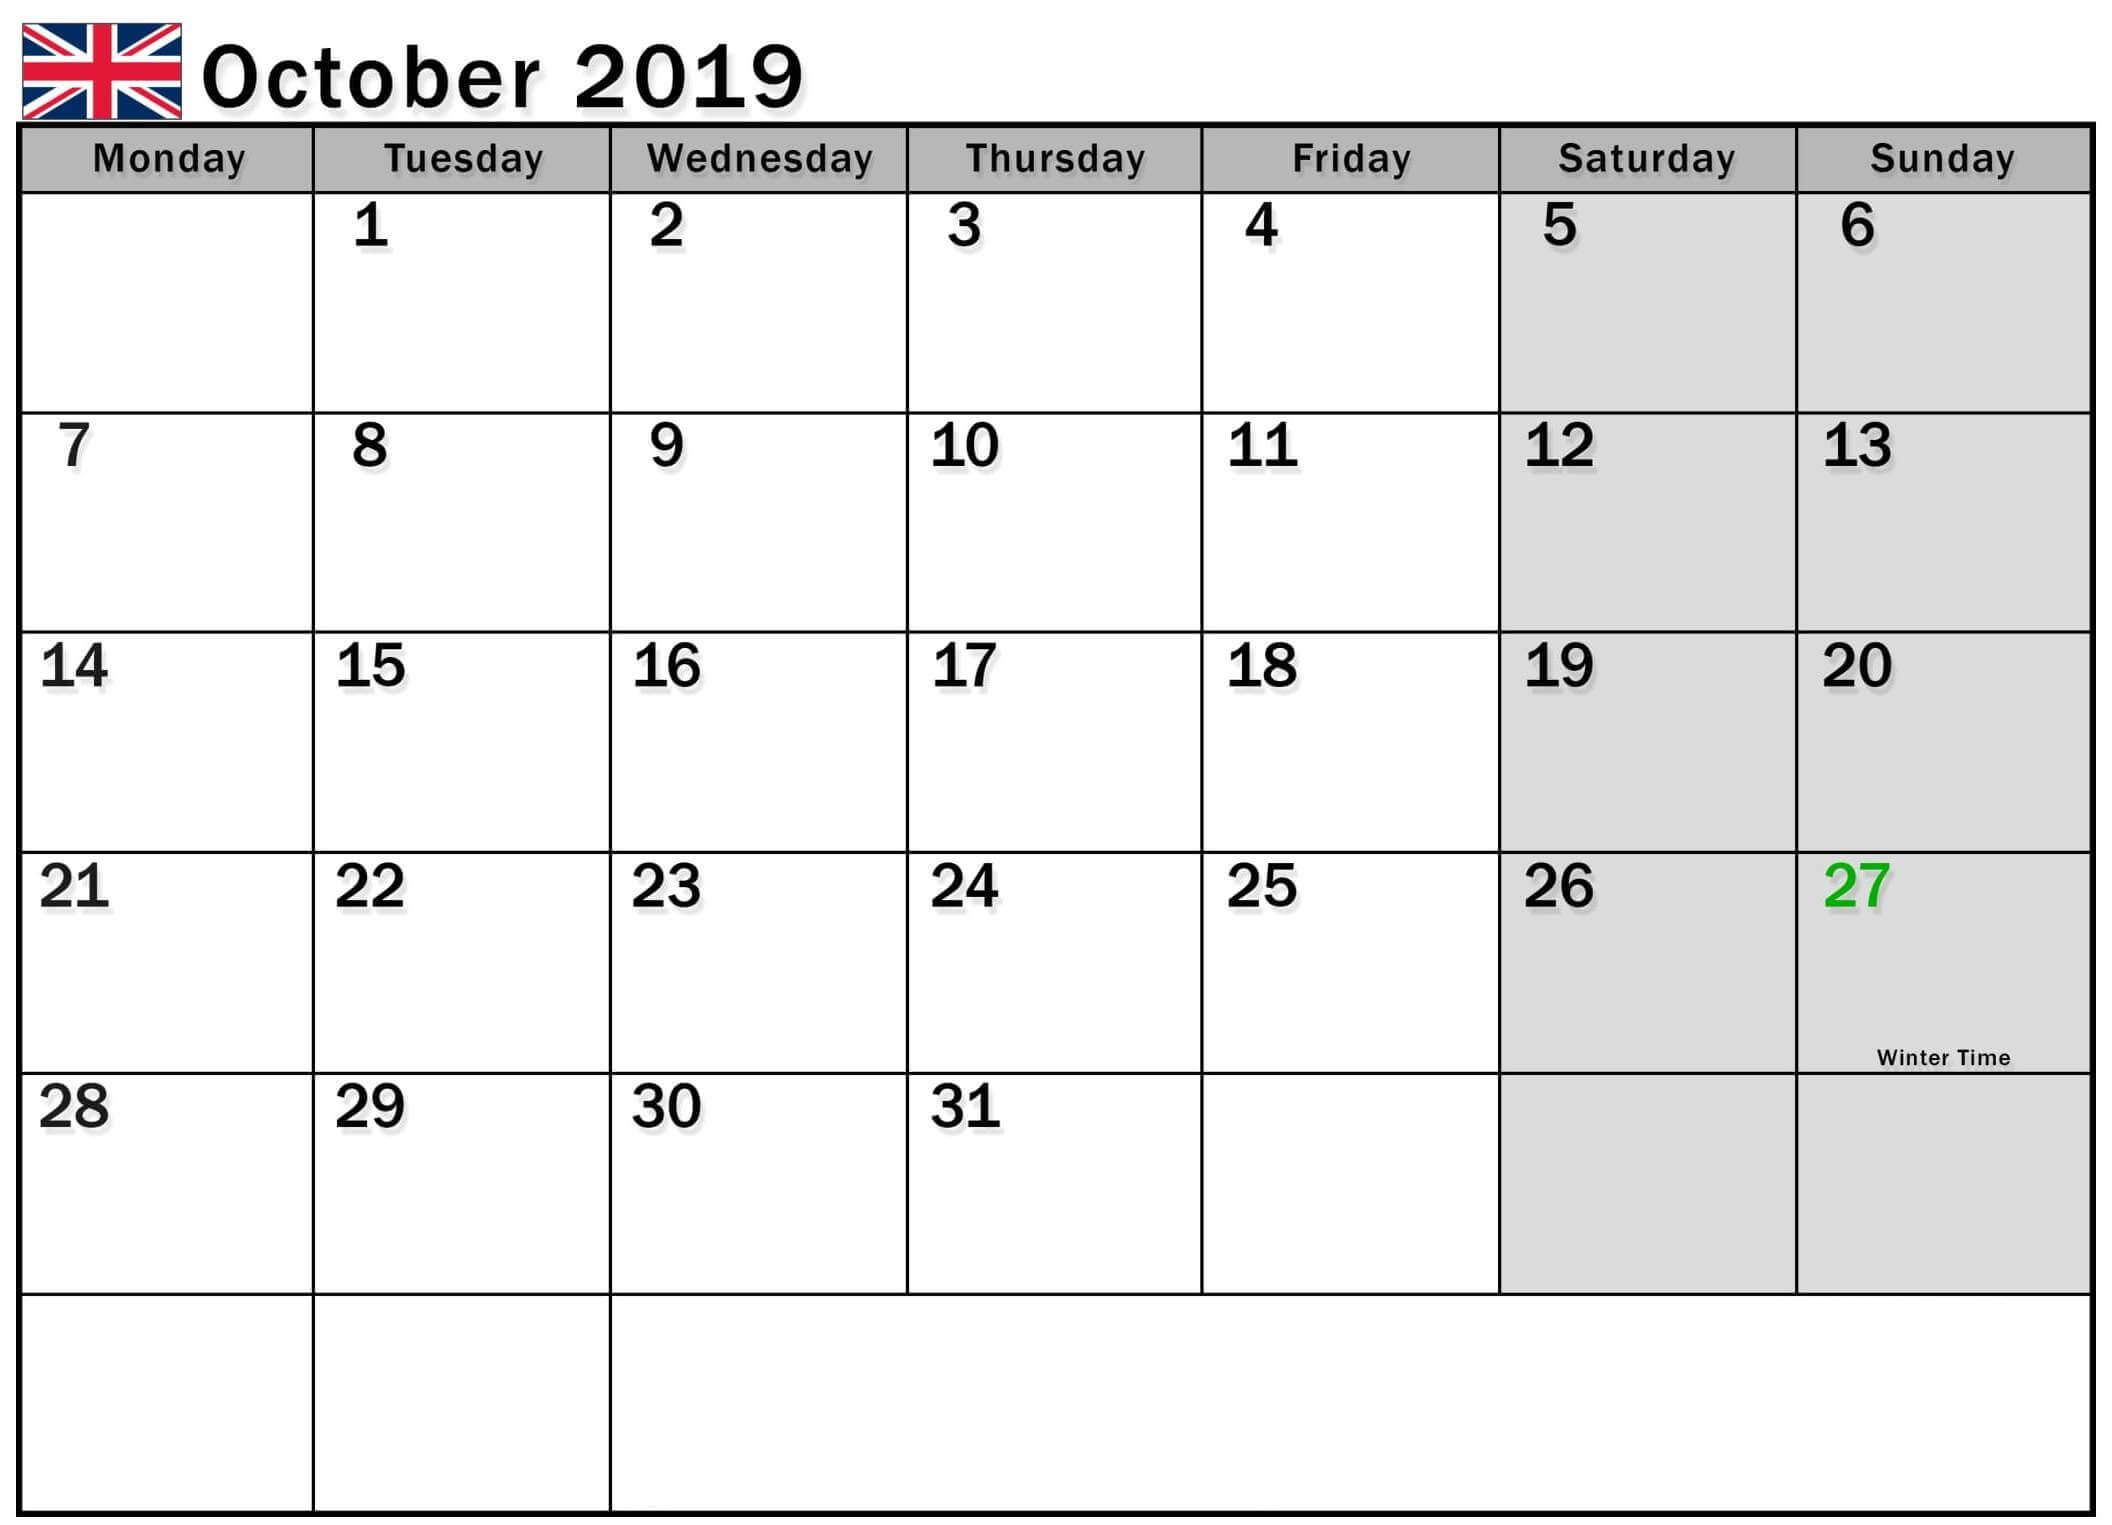 Calendar October 2019 UK with Flag